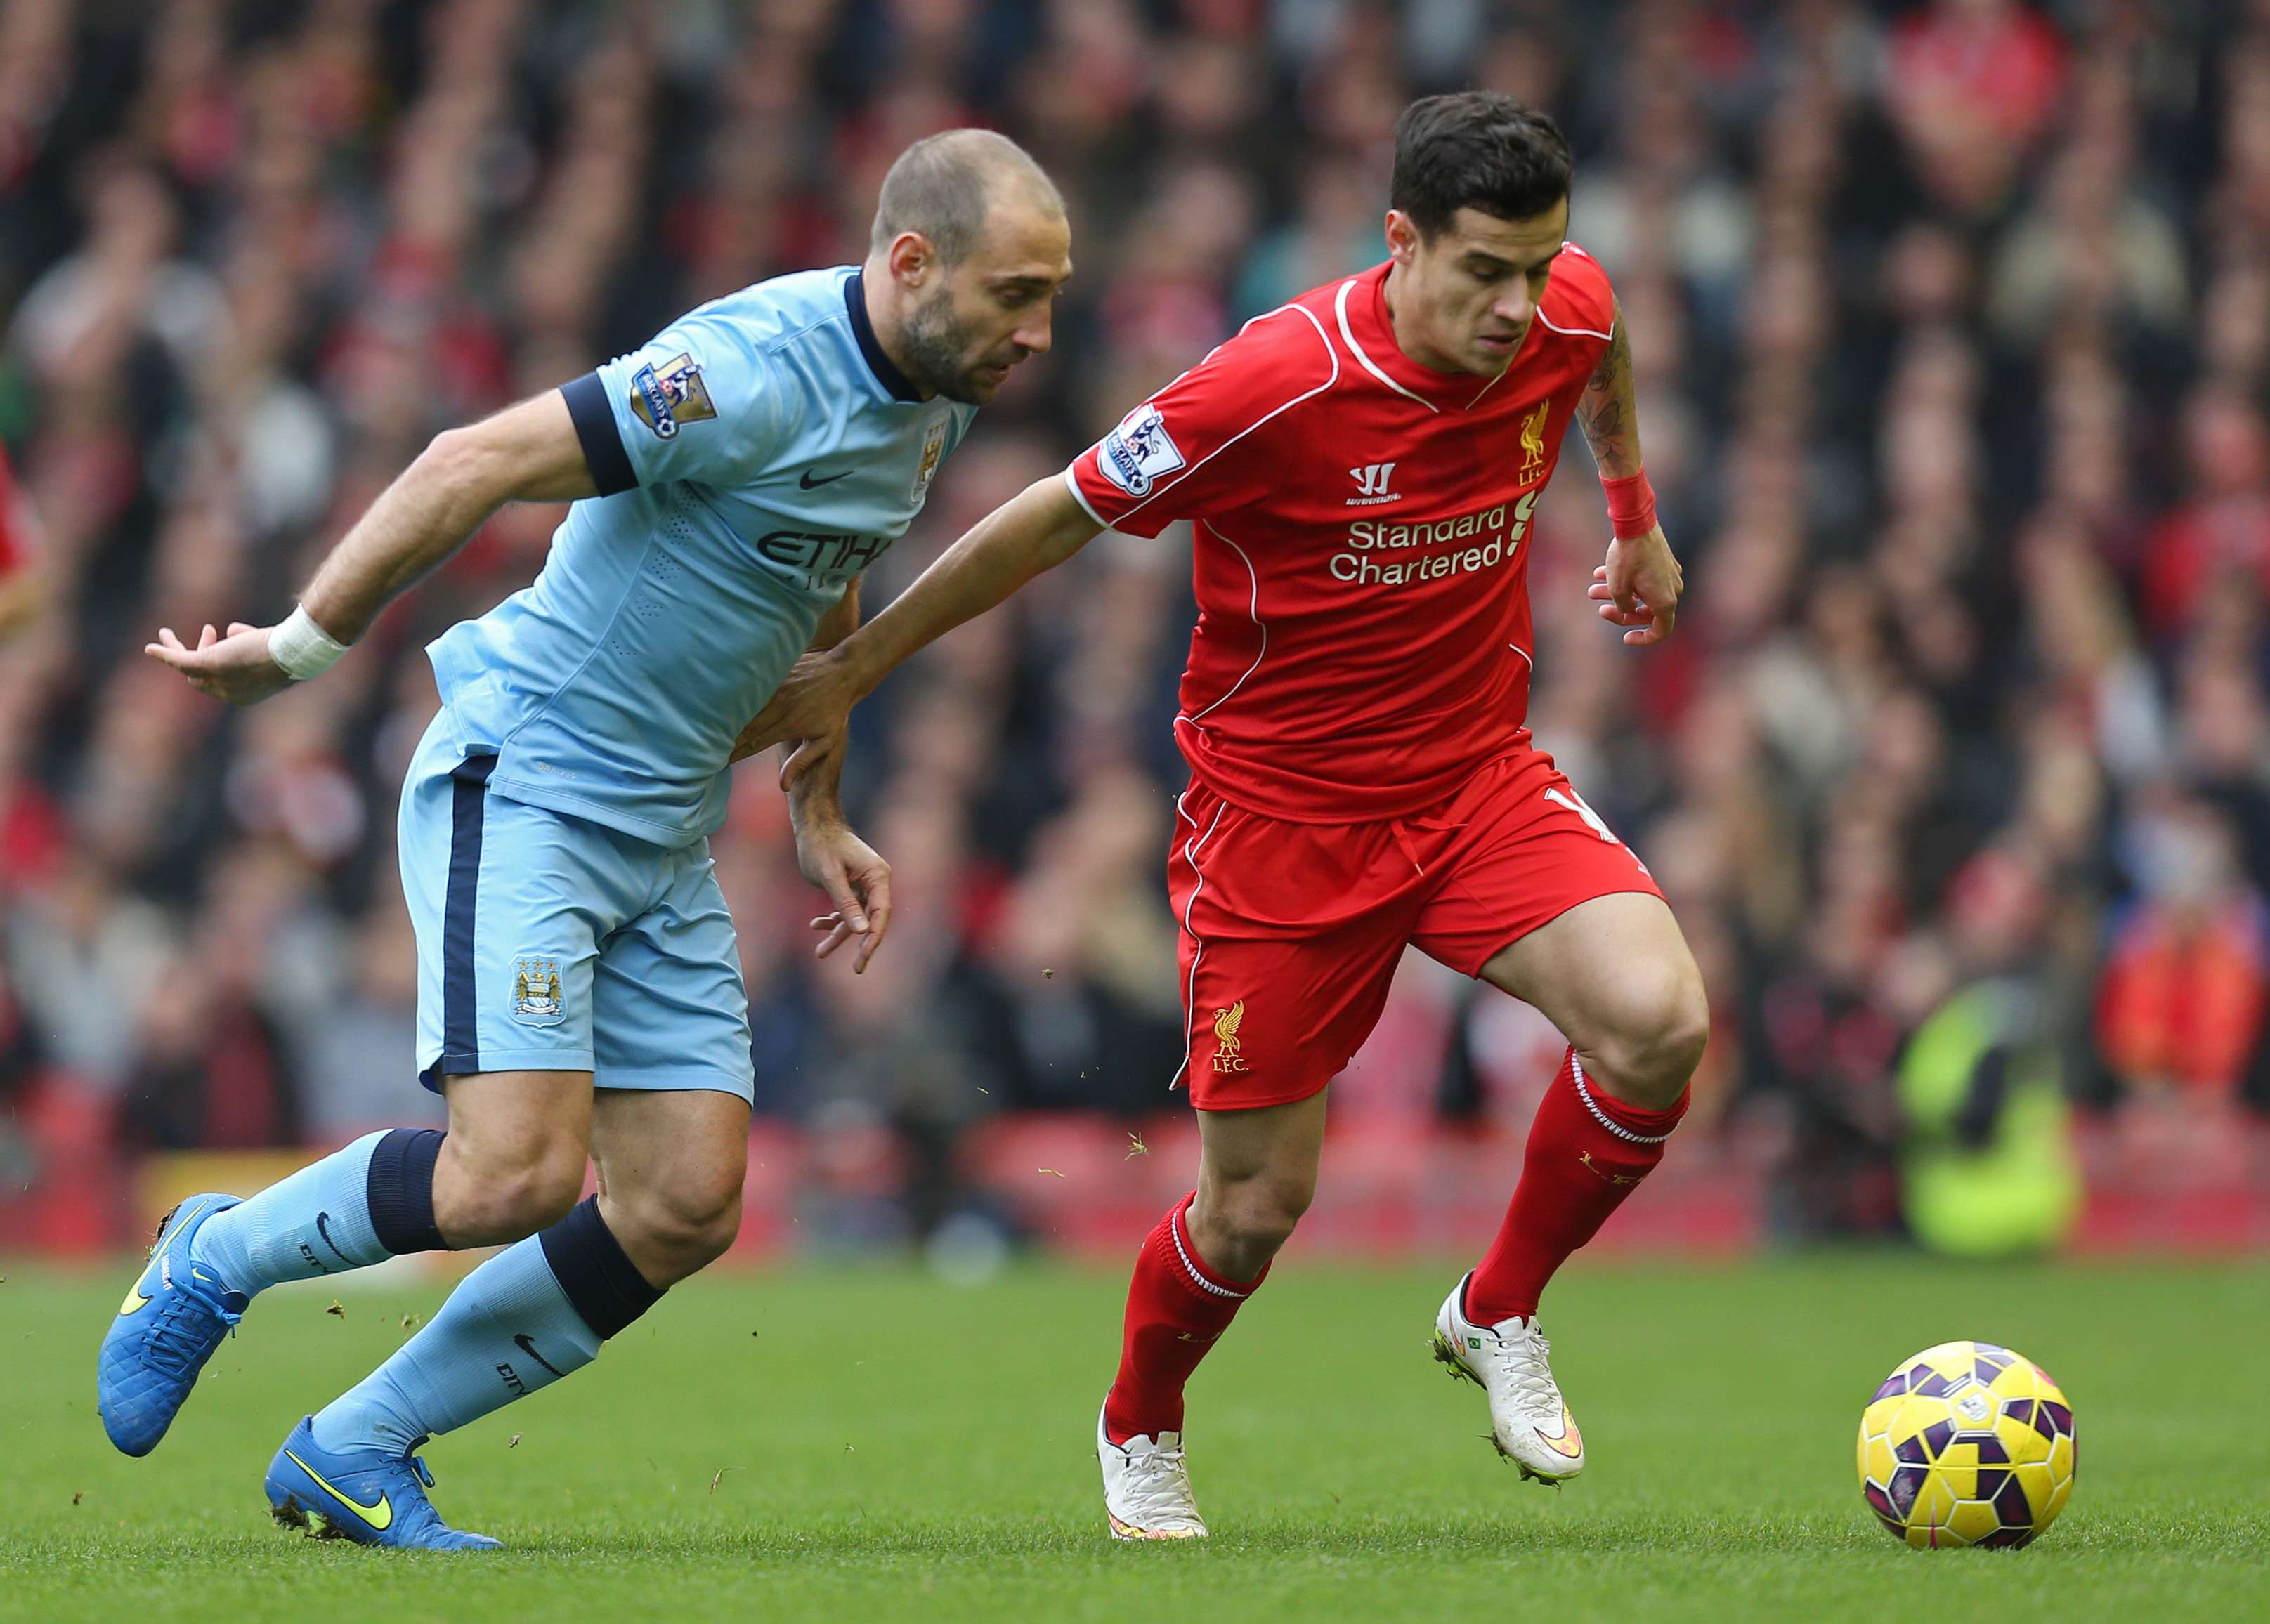 "Football - Liverpool v Manchester City - Barclays Premier League - Anfield - 1/3/15 Liverpool's Philippe Coutinho in action against Manchester City's Pablo Zabaleta Action Images via Reuters / Carl Recine Livepic EDITORIAL USE ONLY. No use with unauthorized audio, video, data, fixture lists, club/league logos or ""live"" services. Online in-match use limited to 45 images, no video emulation. No use in betting, games or single club/league/player publications. Please contact your account representative for further details. Foto: Carl Recine/REUTERS"